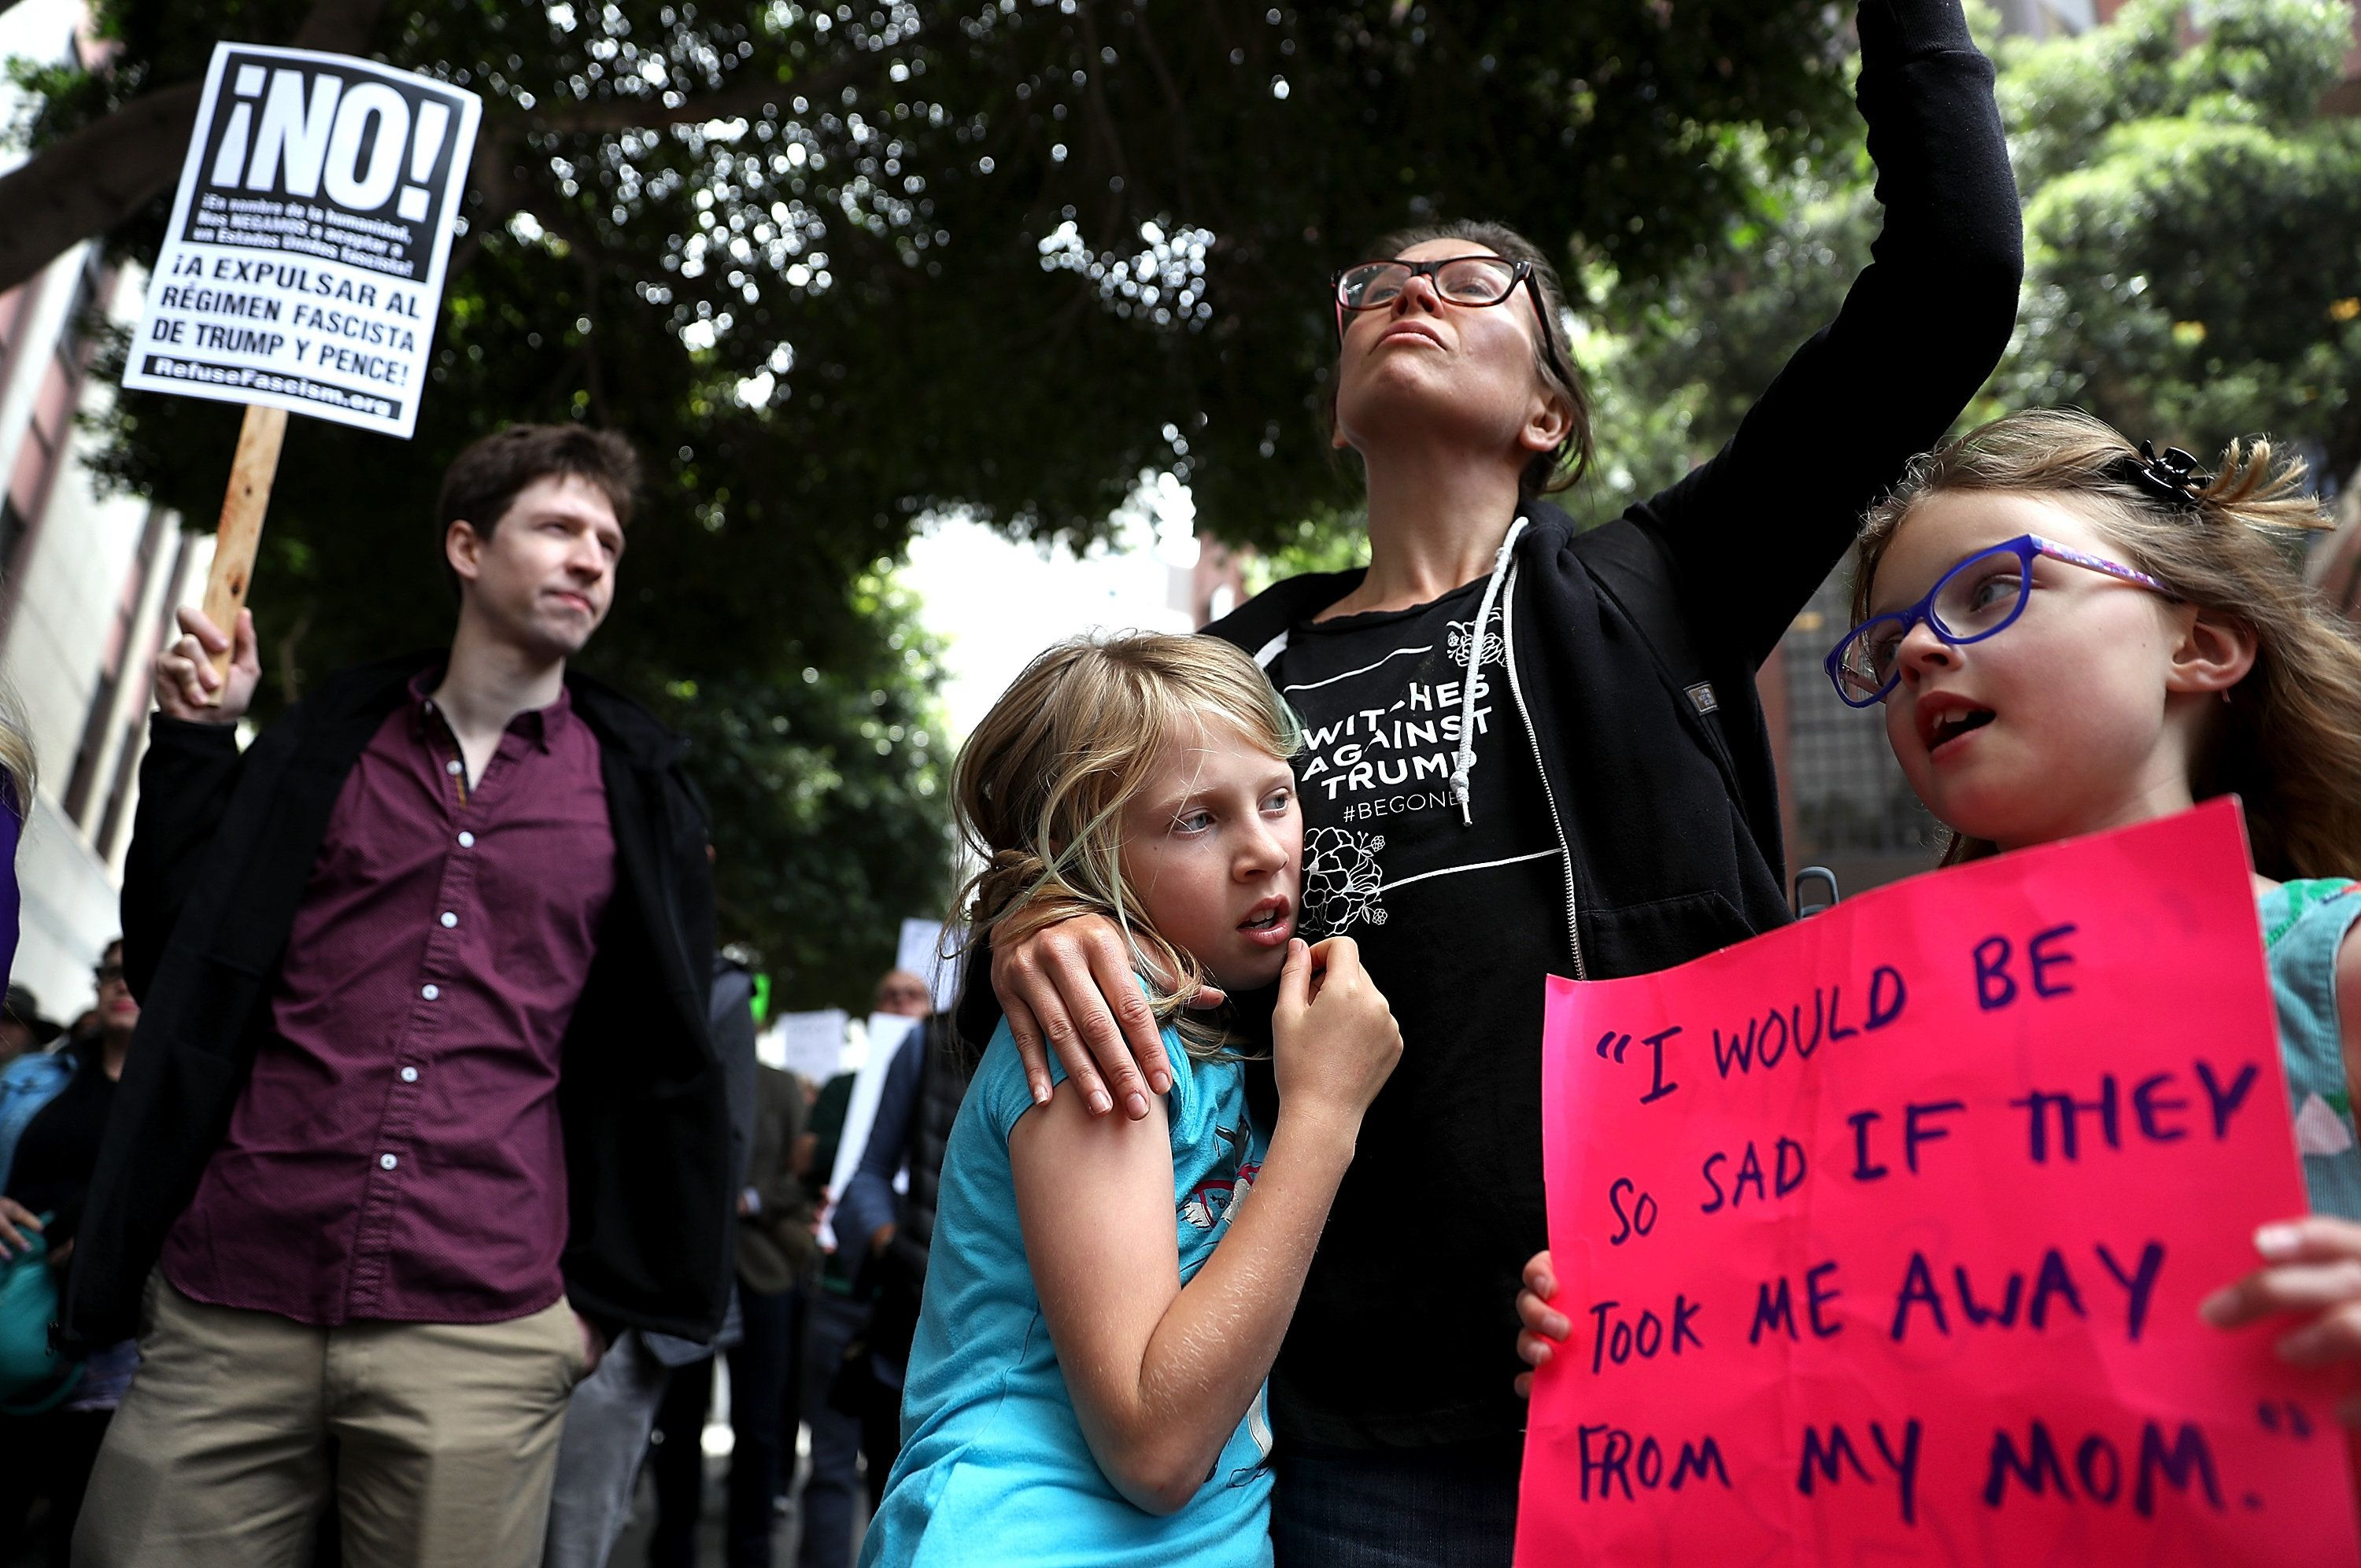 SAN FRANCISCO, CA - JUNE 19:  Kate Schatz (C) stands with her daughter Ivy Pontius (L) and Annea Berggren-Briggs (R) during a demonstration outside of the San Francisco office of the Immigration and Customs Enforcement (ICE) on June 19, 2018 in San Francisco, California. Hundreds of protesters staged a demonstration outside of the ICE offices in San Francisco against the Trump administration's zero tolerance policy to separate immigrant families at the border.  (Photo by Justin Sullivan/Getty Images)